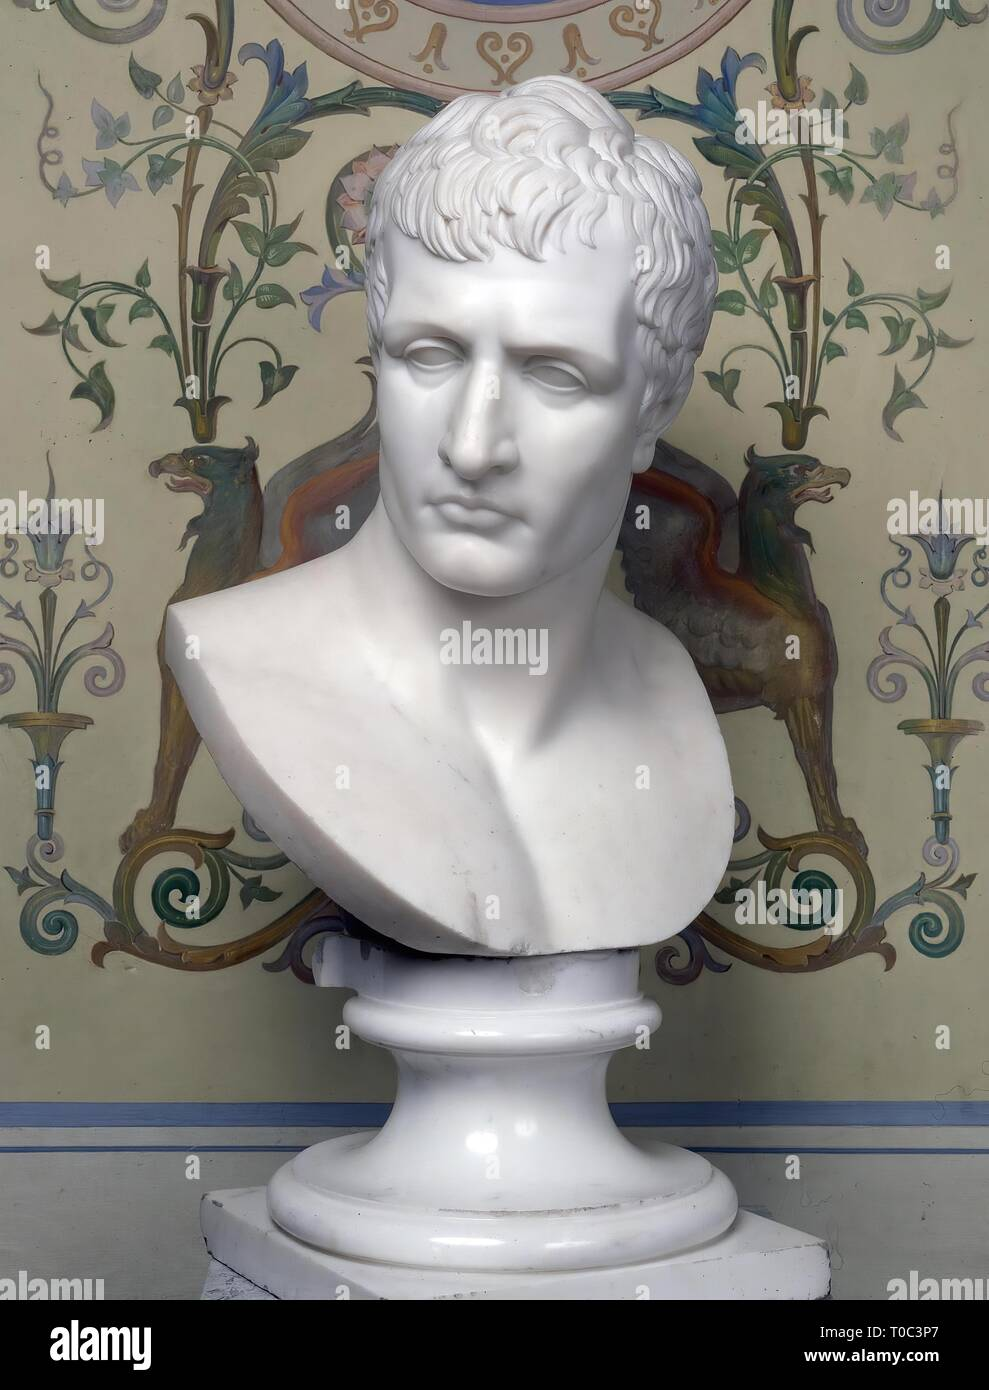 'Portrait of Napoleone Buonaparte (1769-1821)'. Italy, Between 1802 and 1822. Dimensions: heught: 76,0 cm. Museum: State Hermitage, St. Petersburg. Stock Photo